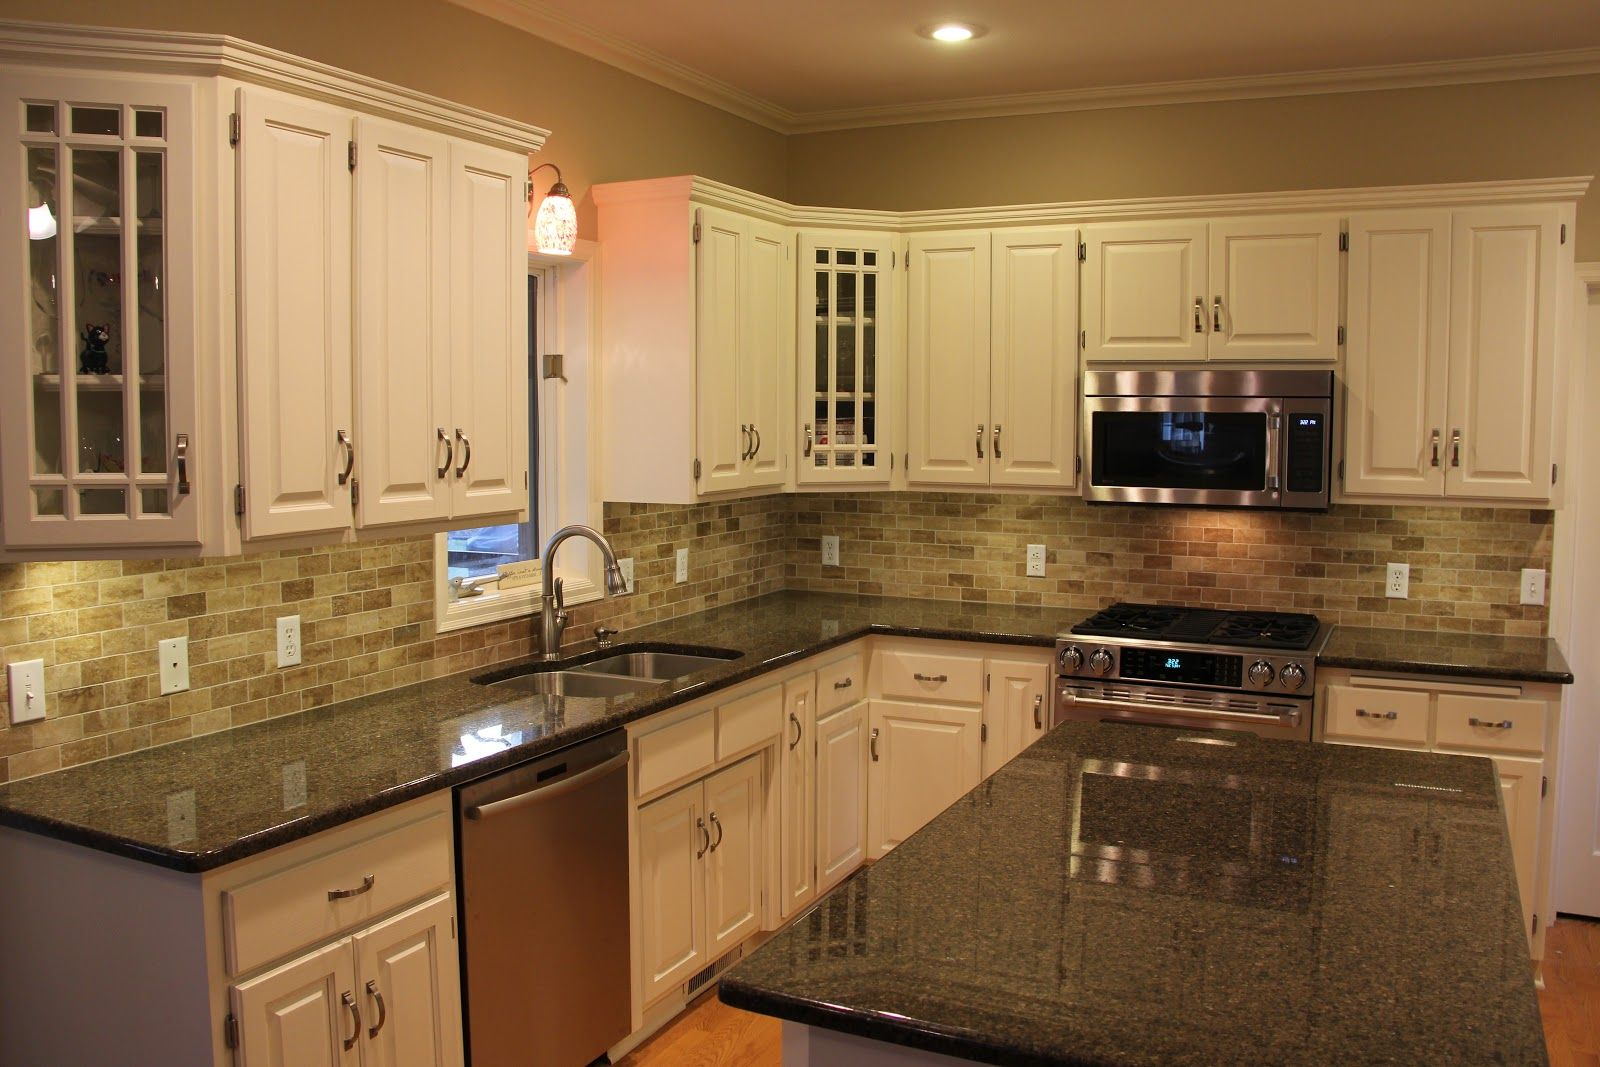 - Black Kitchen Granite Countertops With Tile Backsplash And White